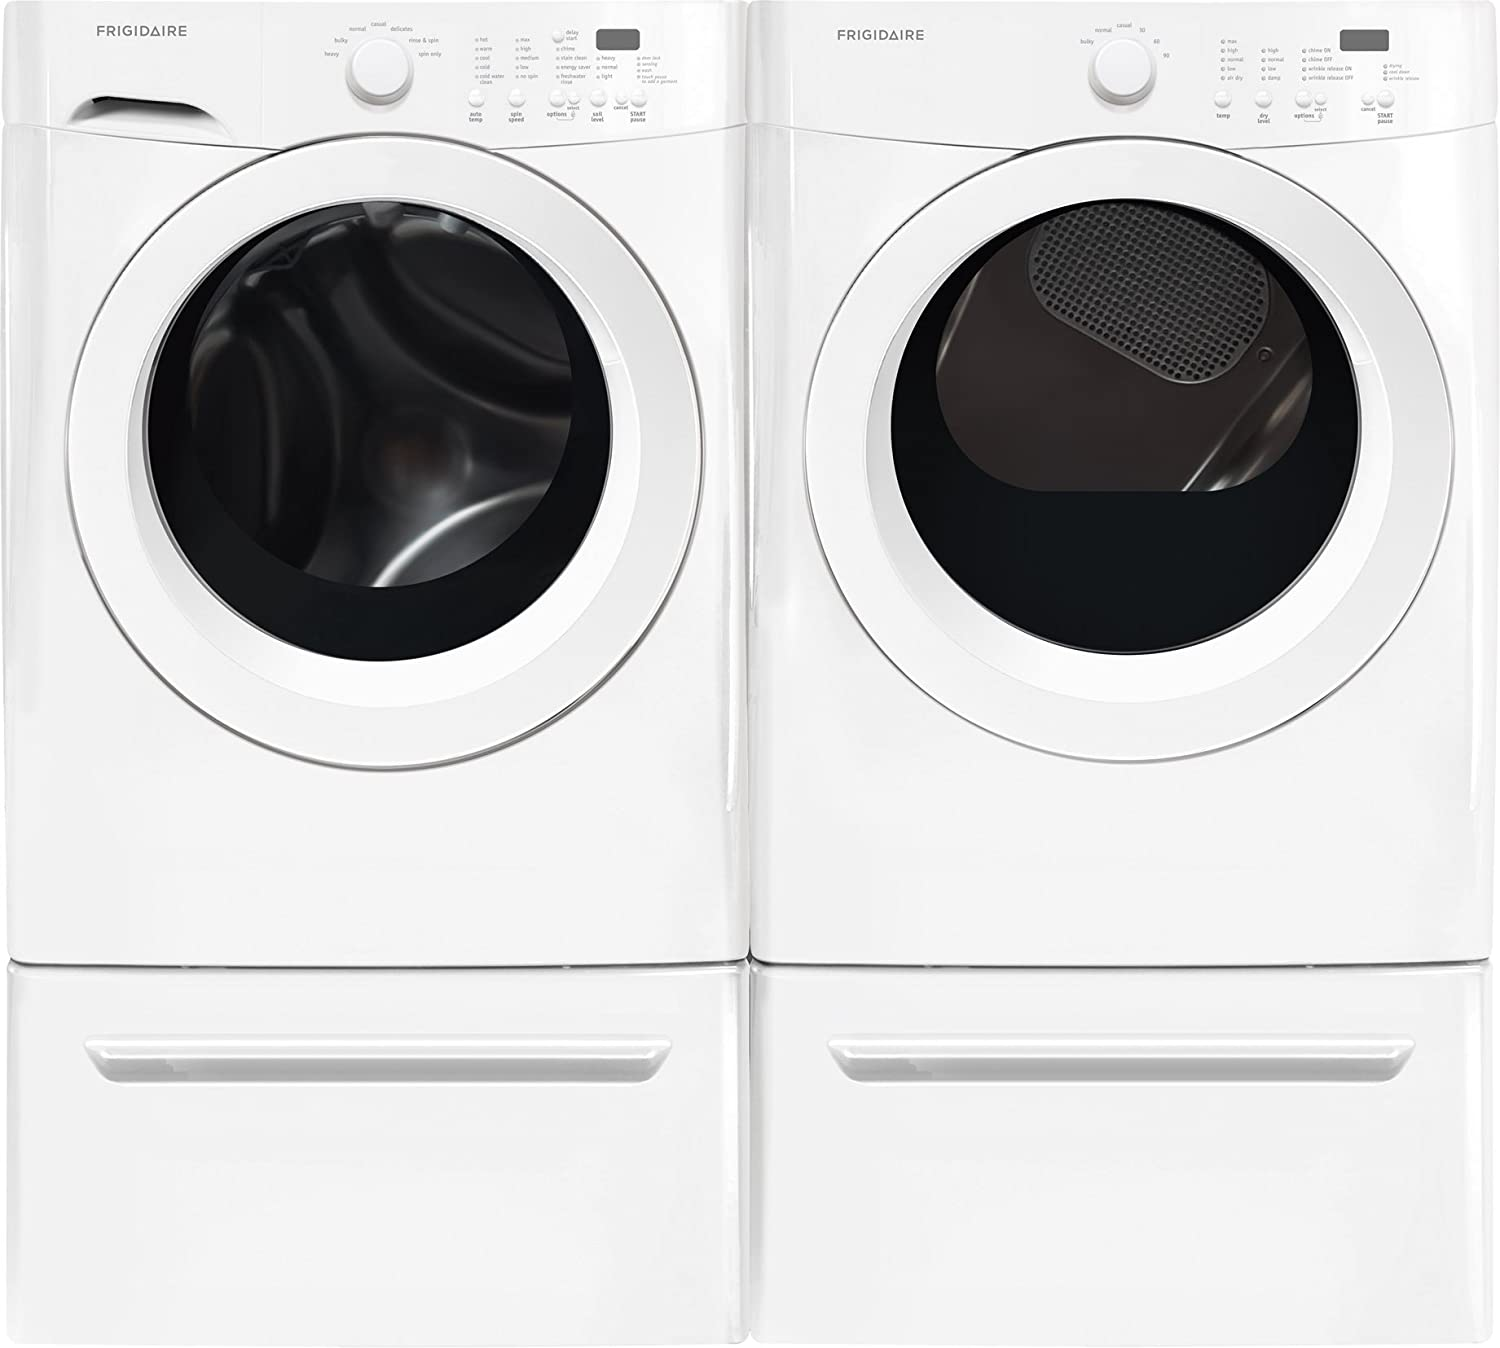 71P8GGxiaRL._SL1500_ amazon com frigidaire white front load laundry pair with  at mifinder.co